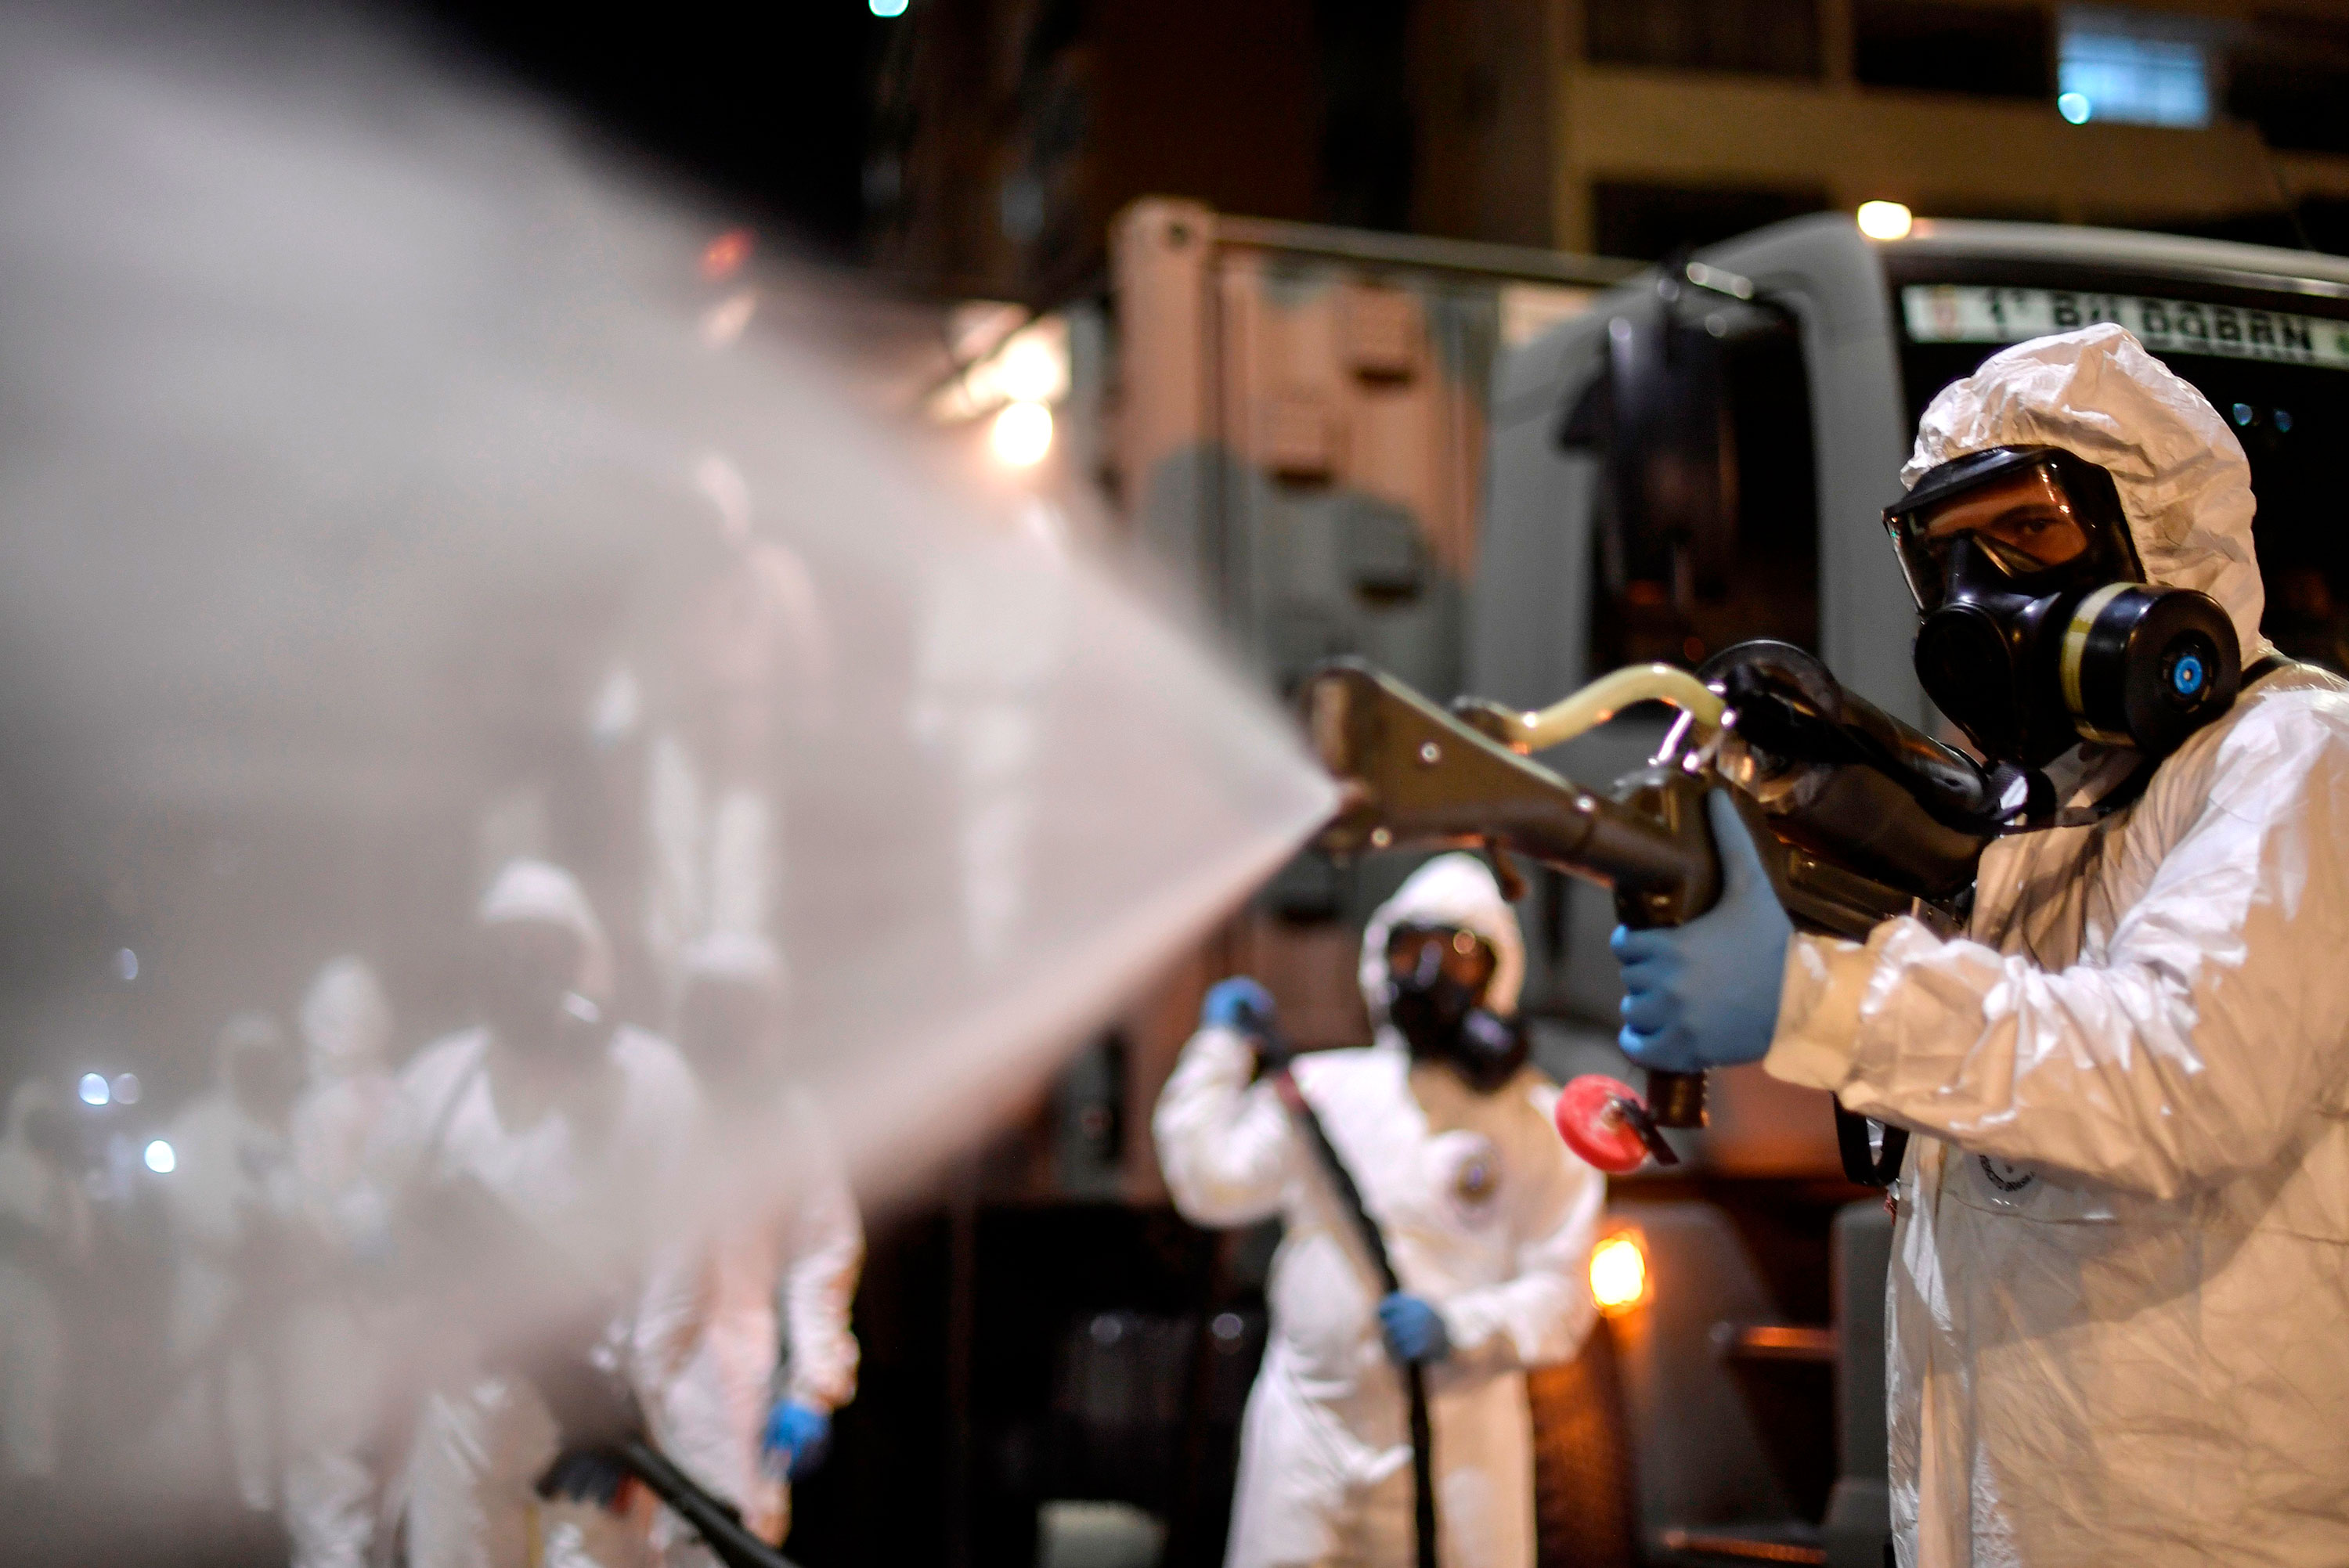 Soldiers spray disinfectant at the Municipal Market in the Belo Horizonte, Brazil, on August 18.